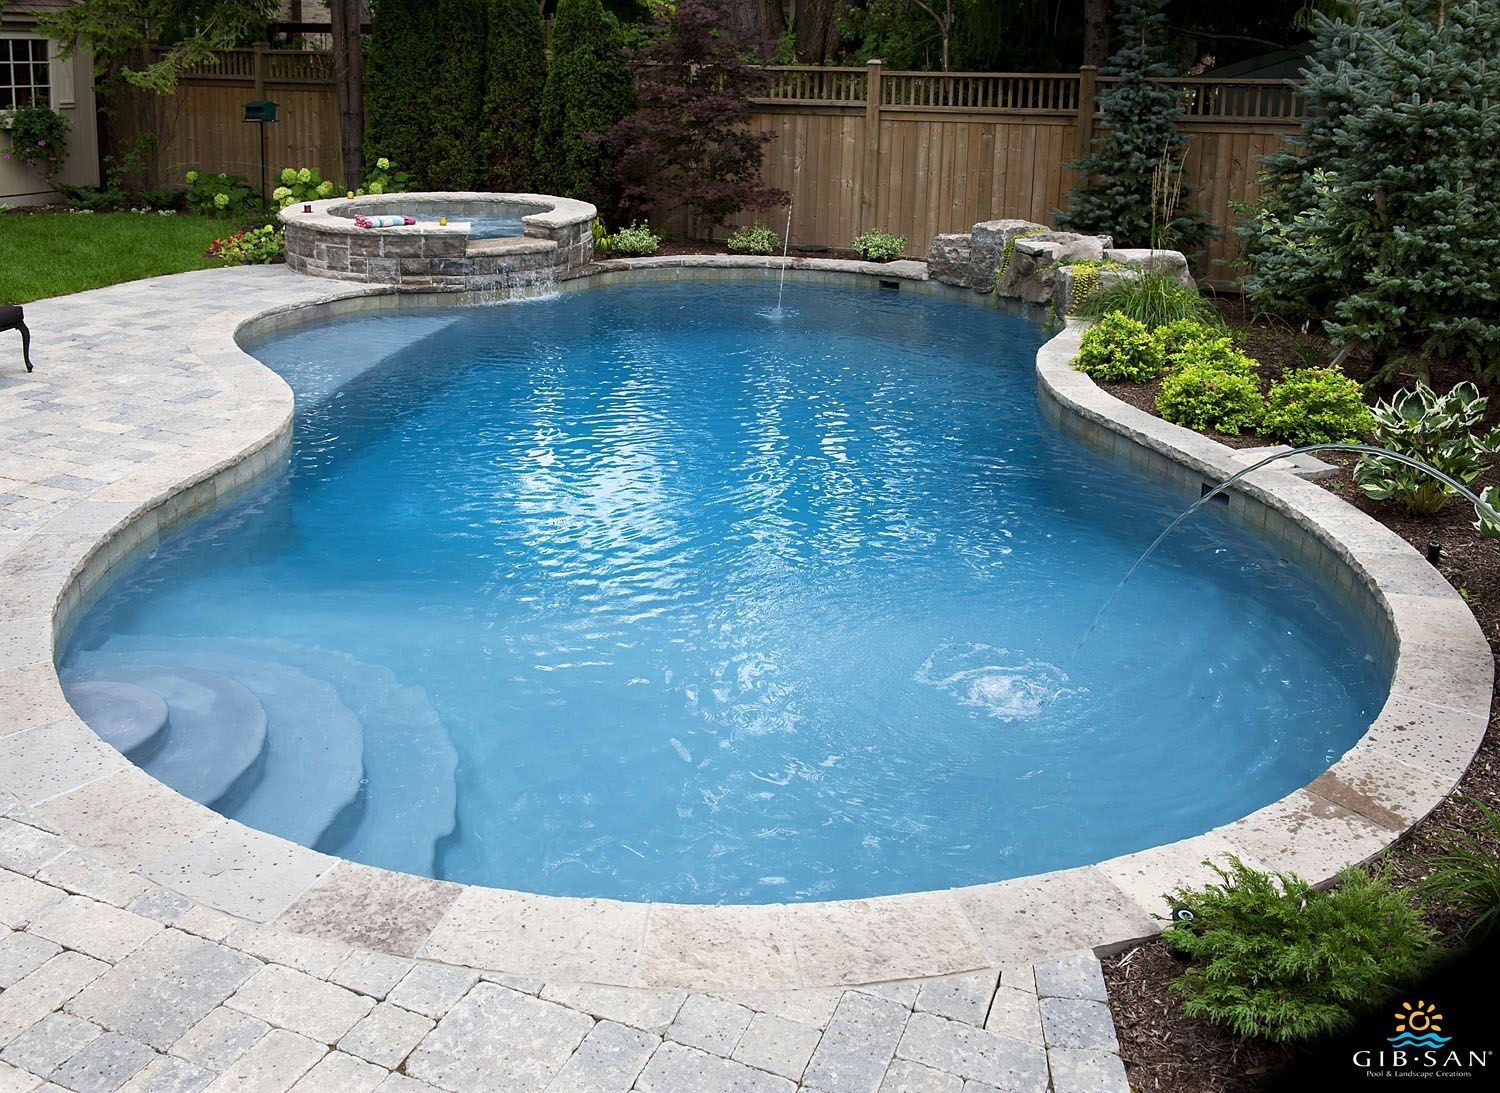 Sprungbrett Pool Selber Bauen Custom Concrete Pools Gib San Pools Pool In 2019 Pool Im